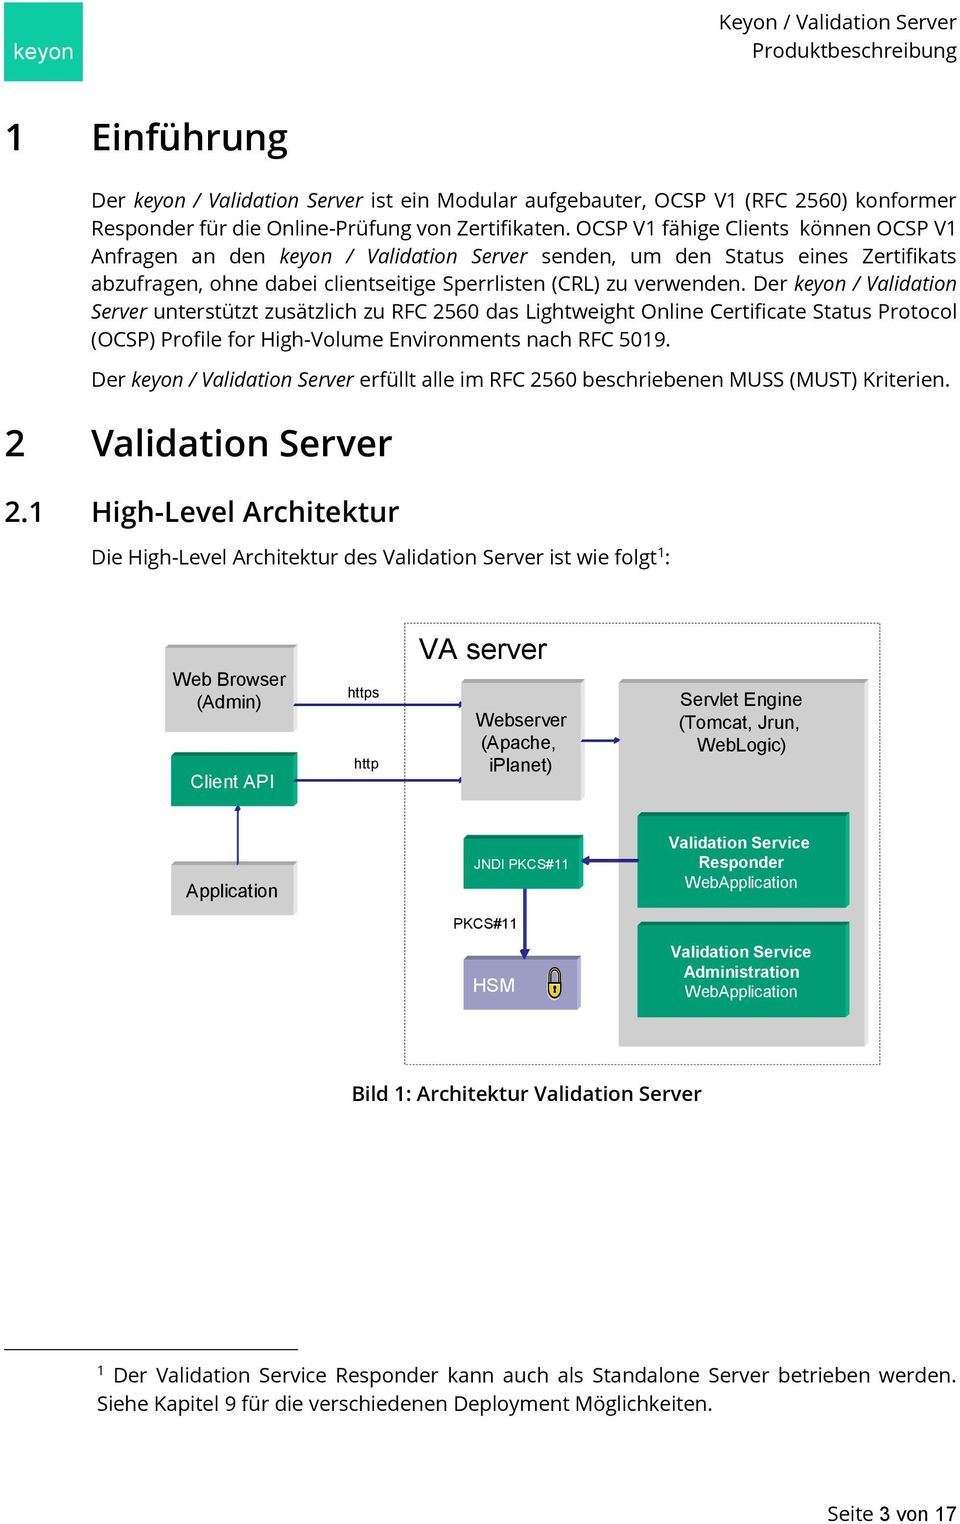 Der keyon / Validation Server unterstützt zusätzlich zu RFC 2560 das Lightweight Online Certificate Status Protocol (OCSP) Profile for High-Volume Environments nach RFC 5019.